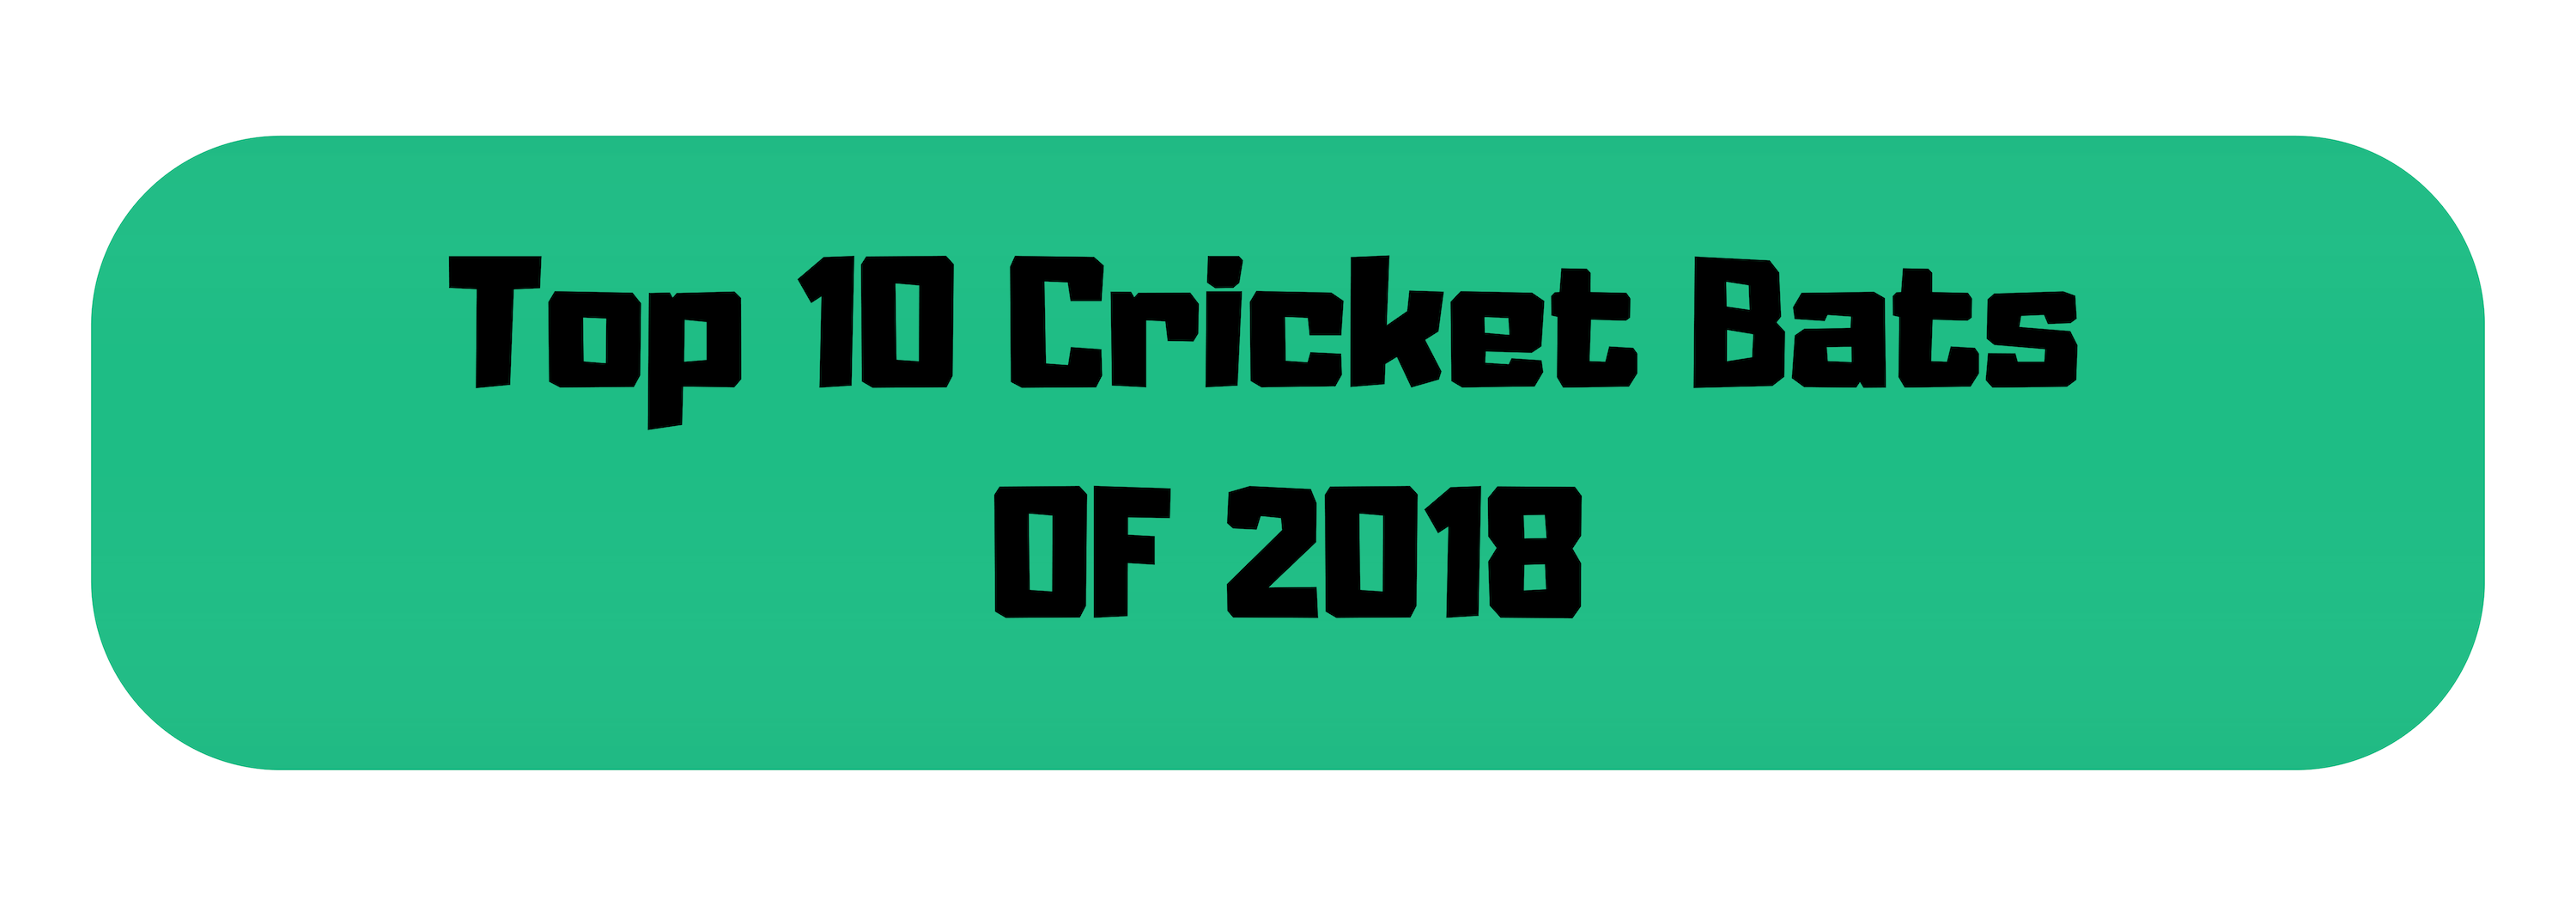 Top 10 cricket bats of 2018